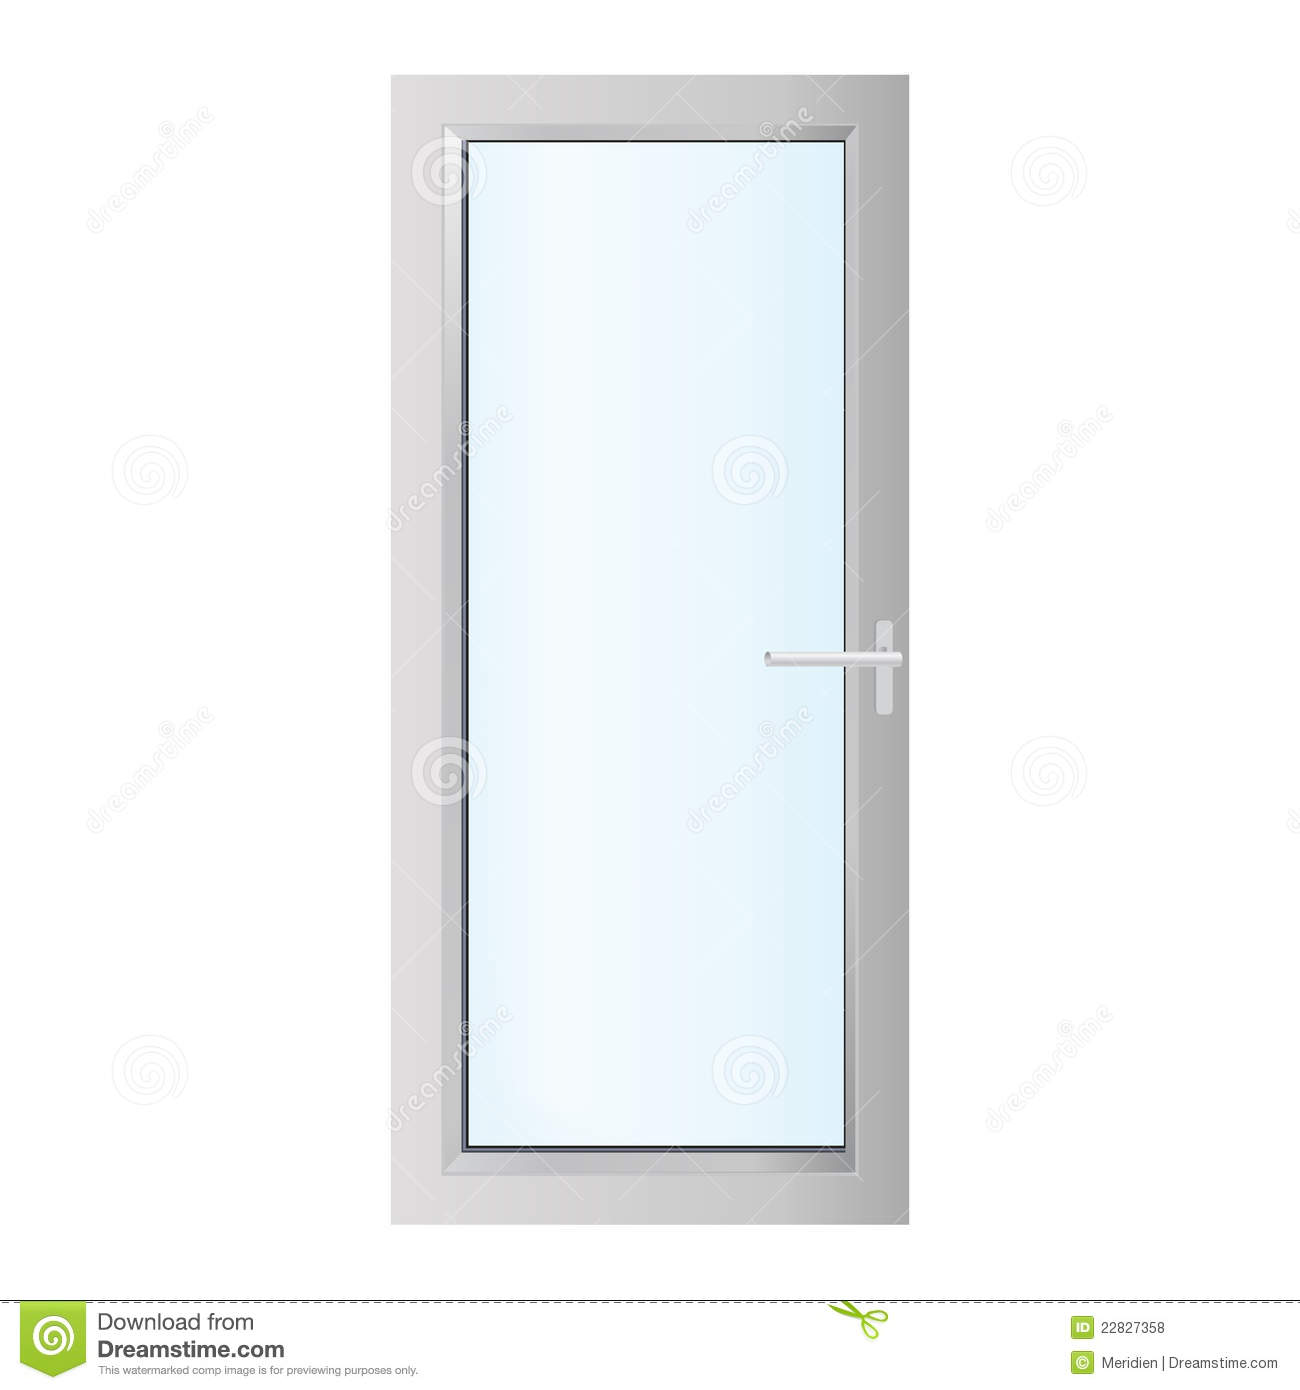 Glass door clipart #19